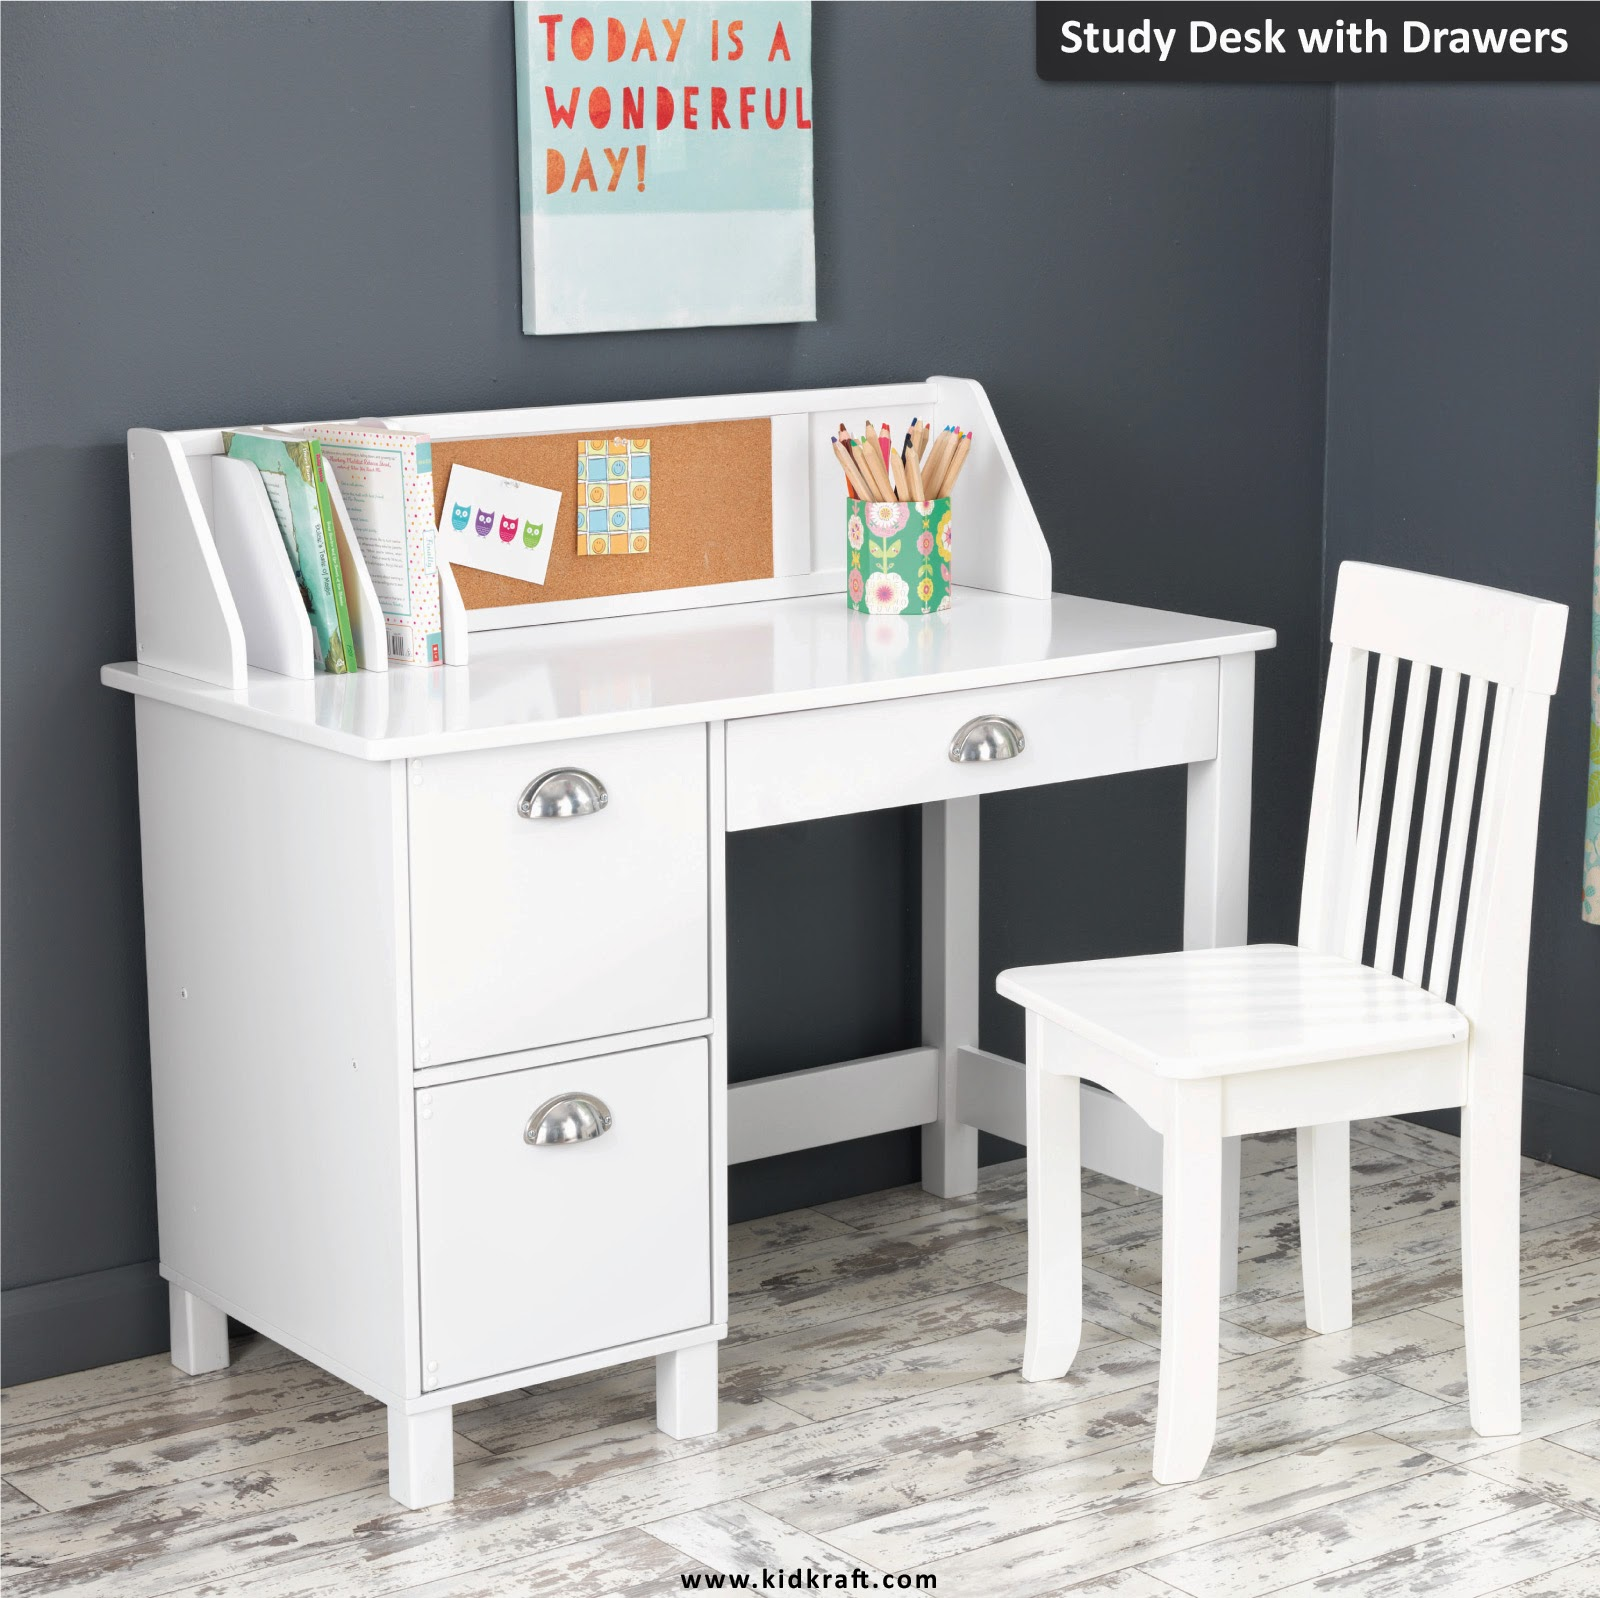 Kidkraft Toys Amp Furniture New Study Desk With Drawers